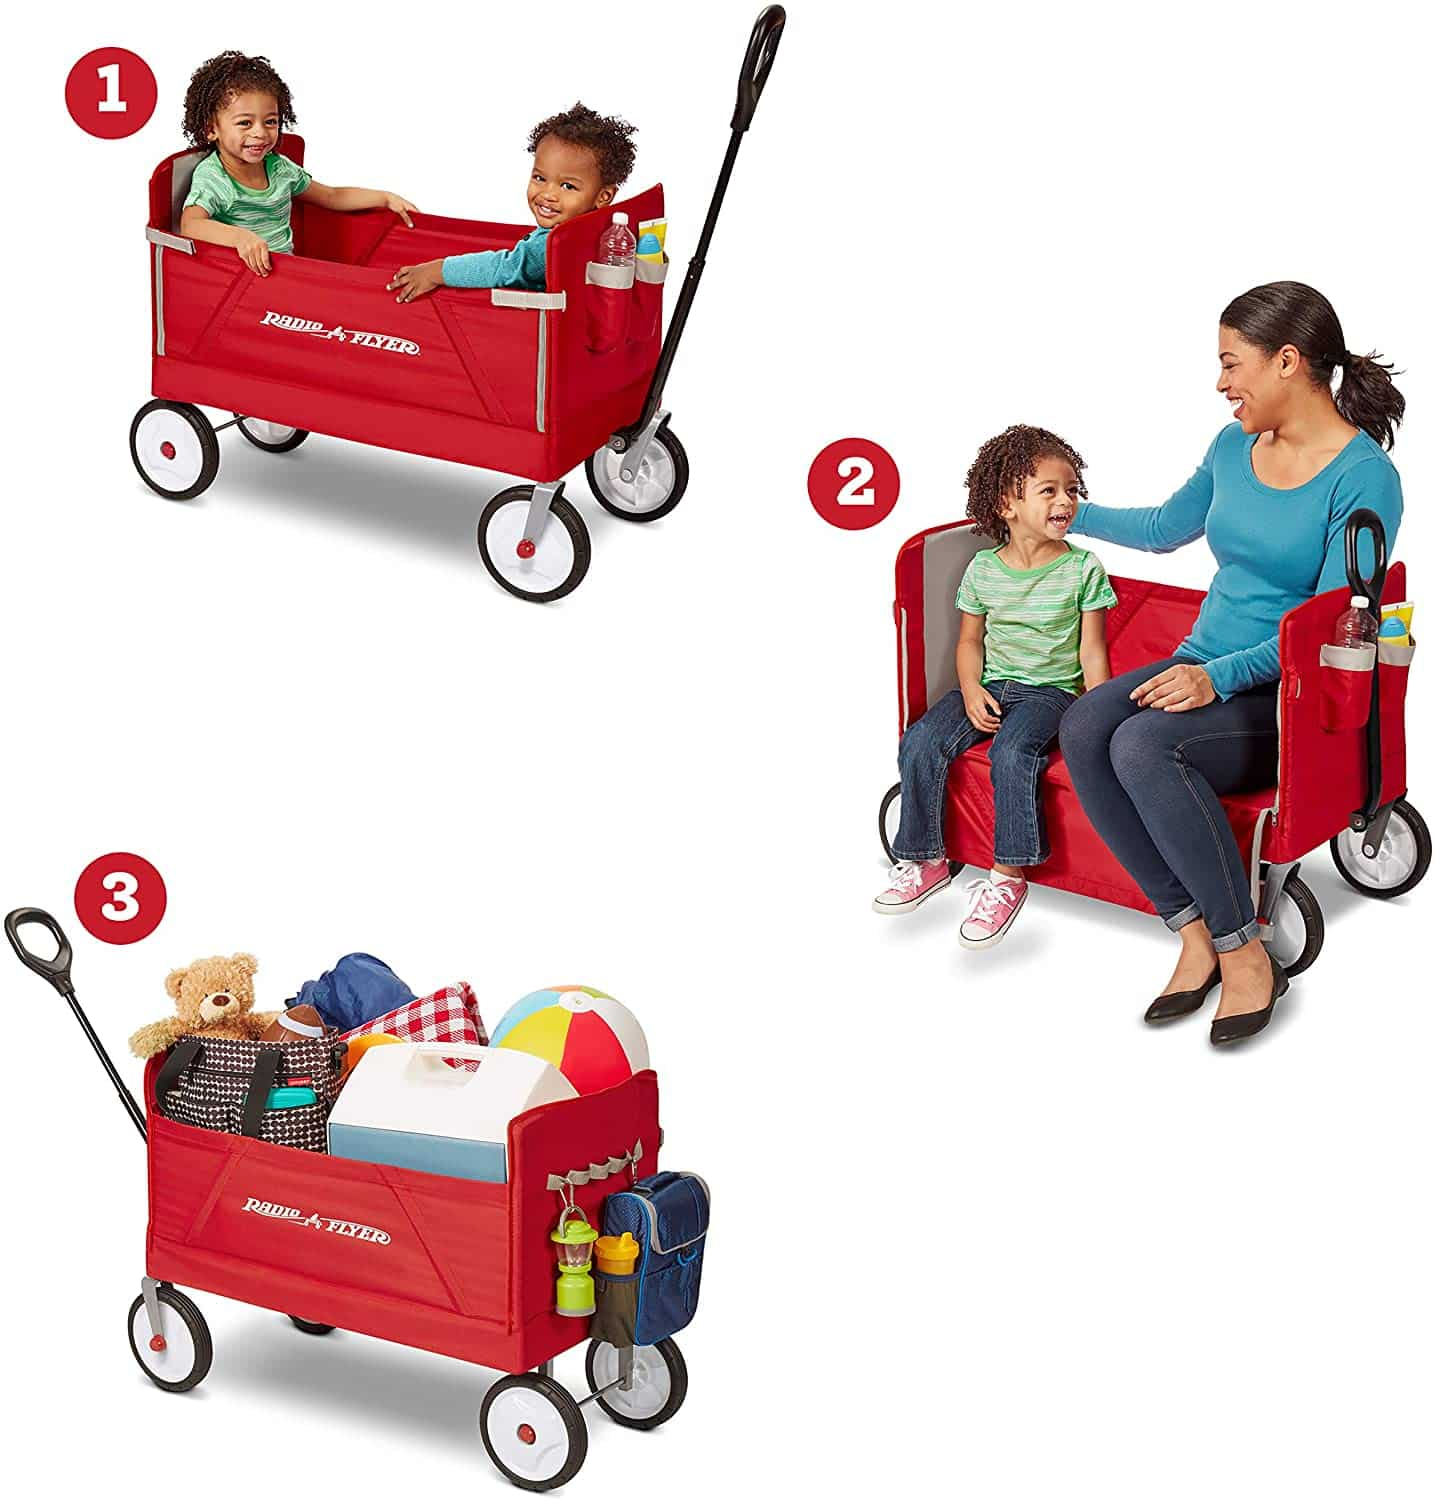 Radio Flyer Folding Wagon for kids and cargo, Red for $69 (Reg $89.99)